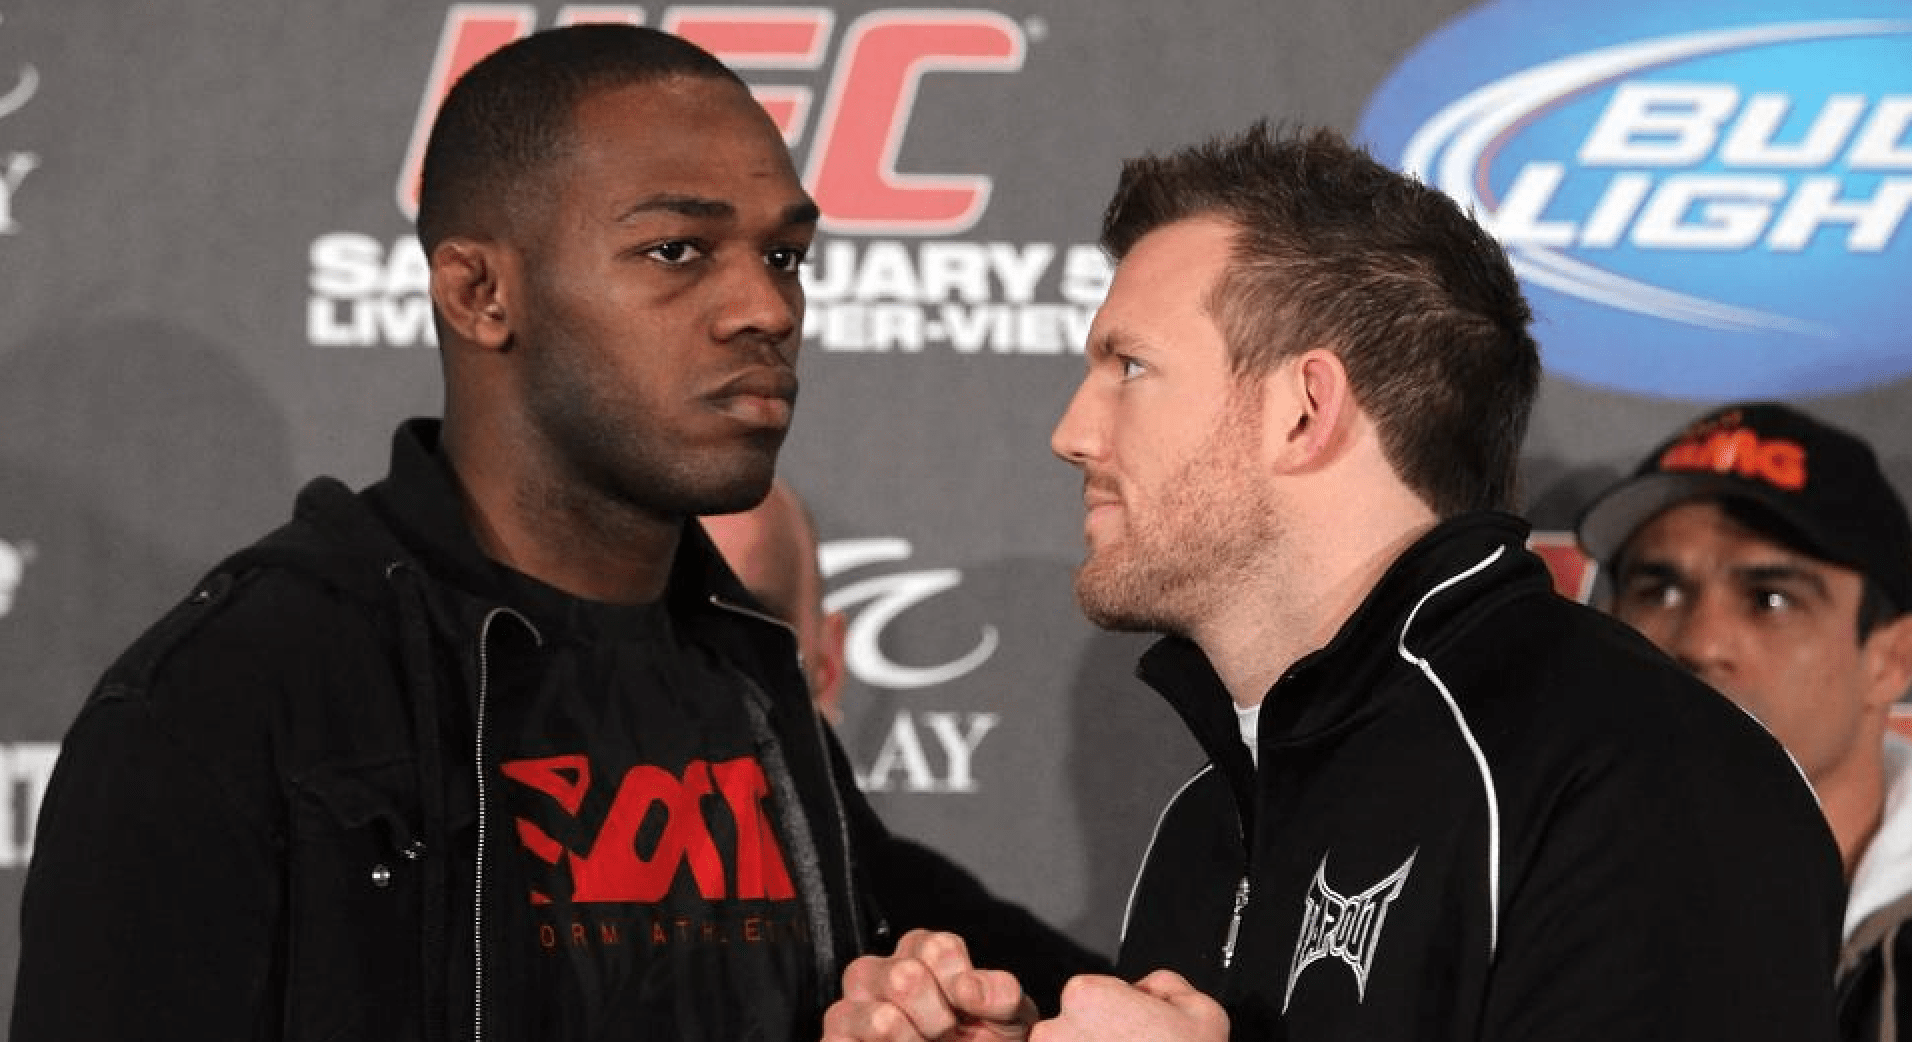 Ryan Bader On Jon Jones: I Can Beat This Guy